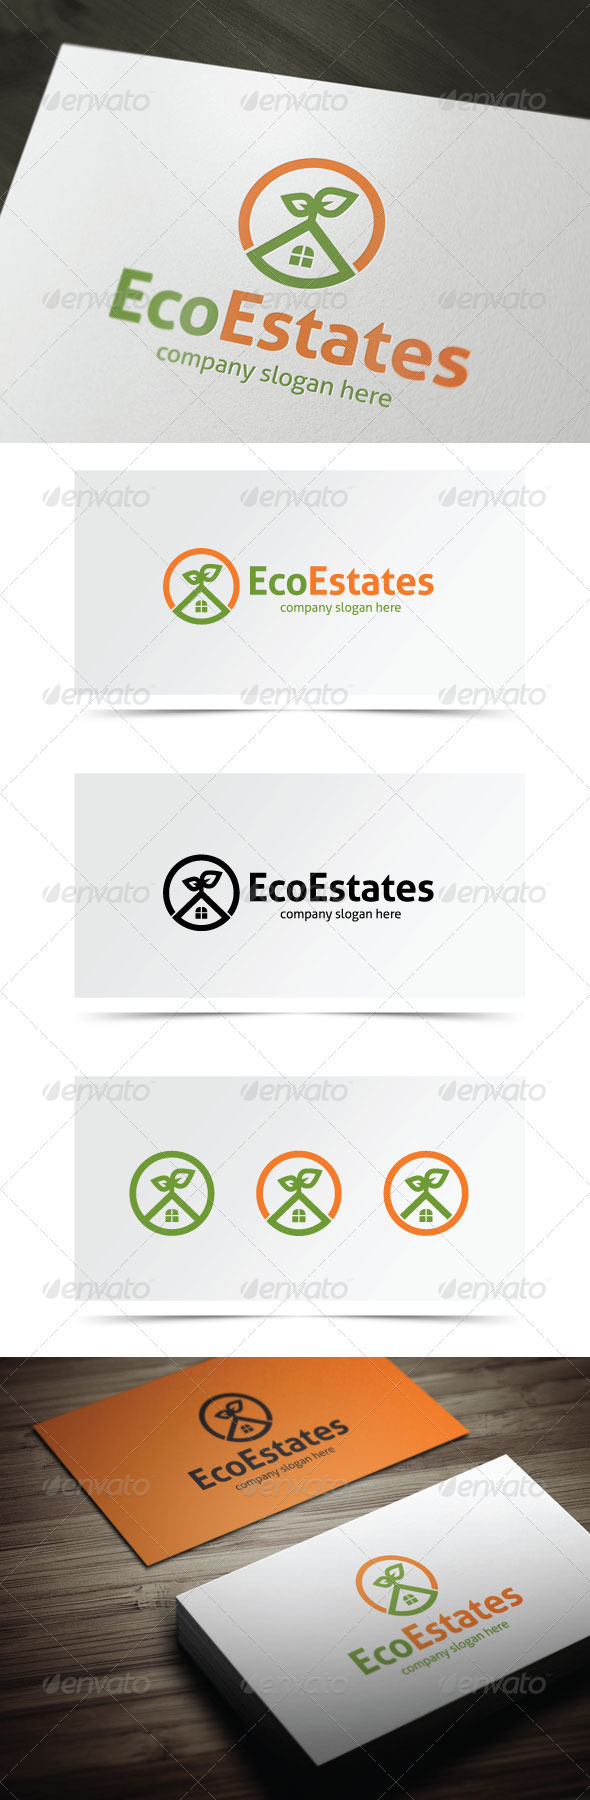 GraphicRiver Eco Estates 6603779